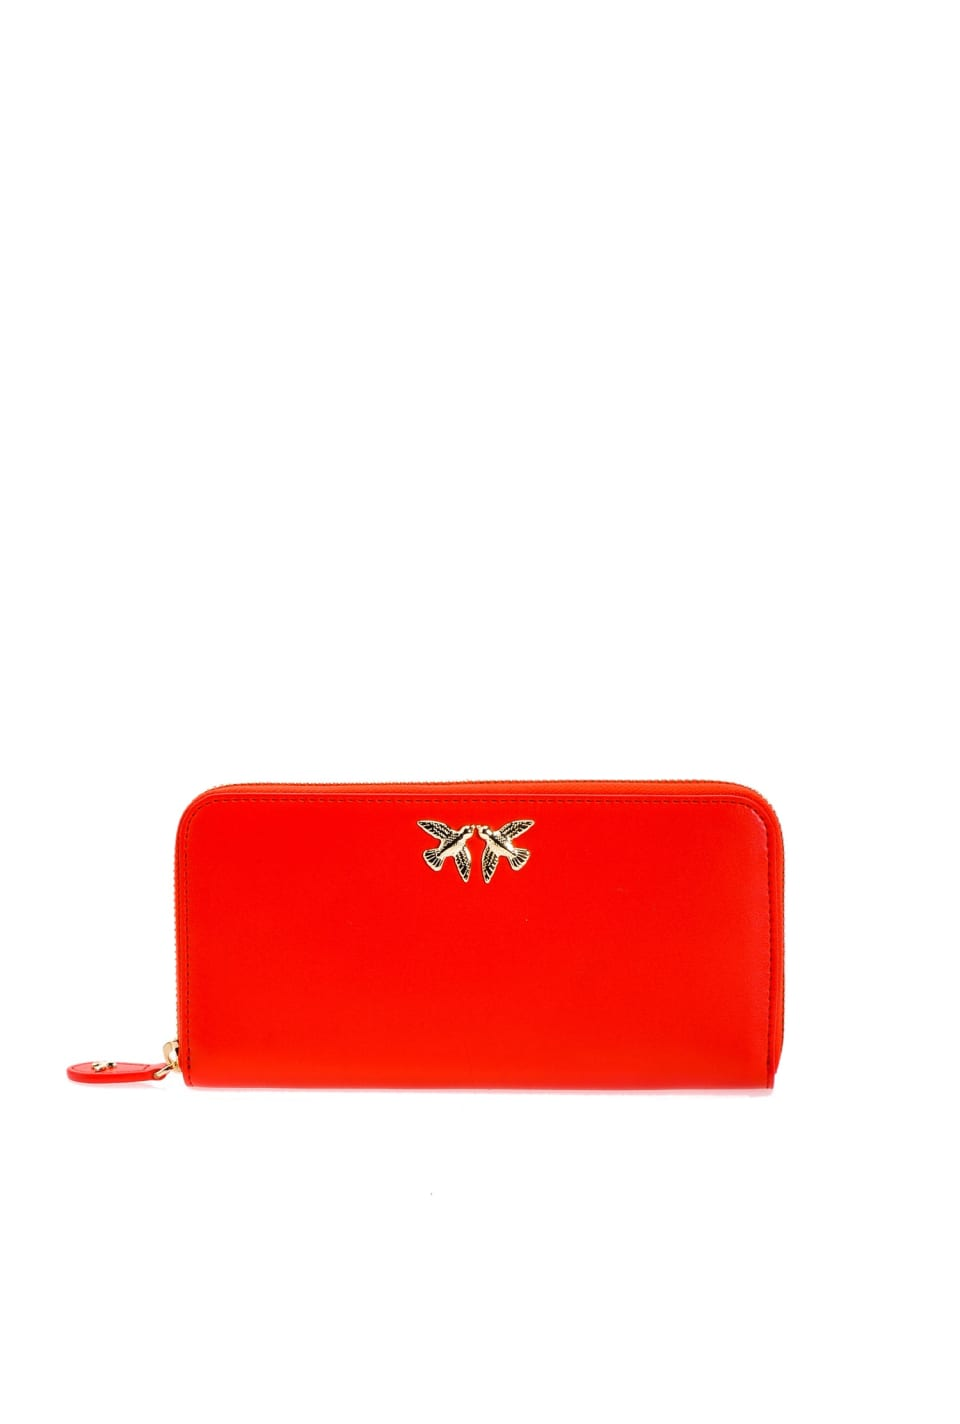 Cartera con cremallera y Love Birds